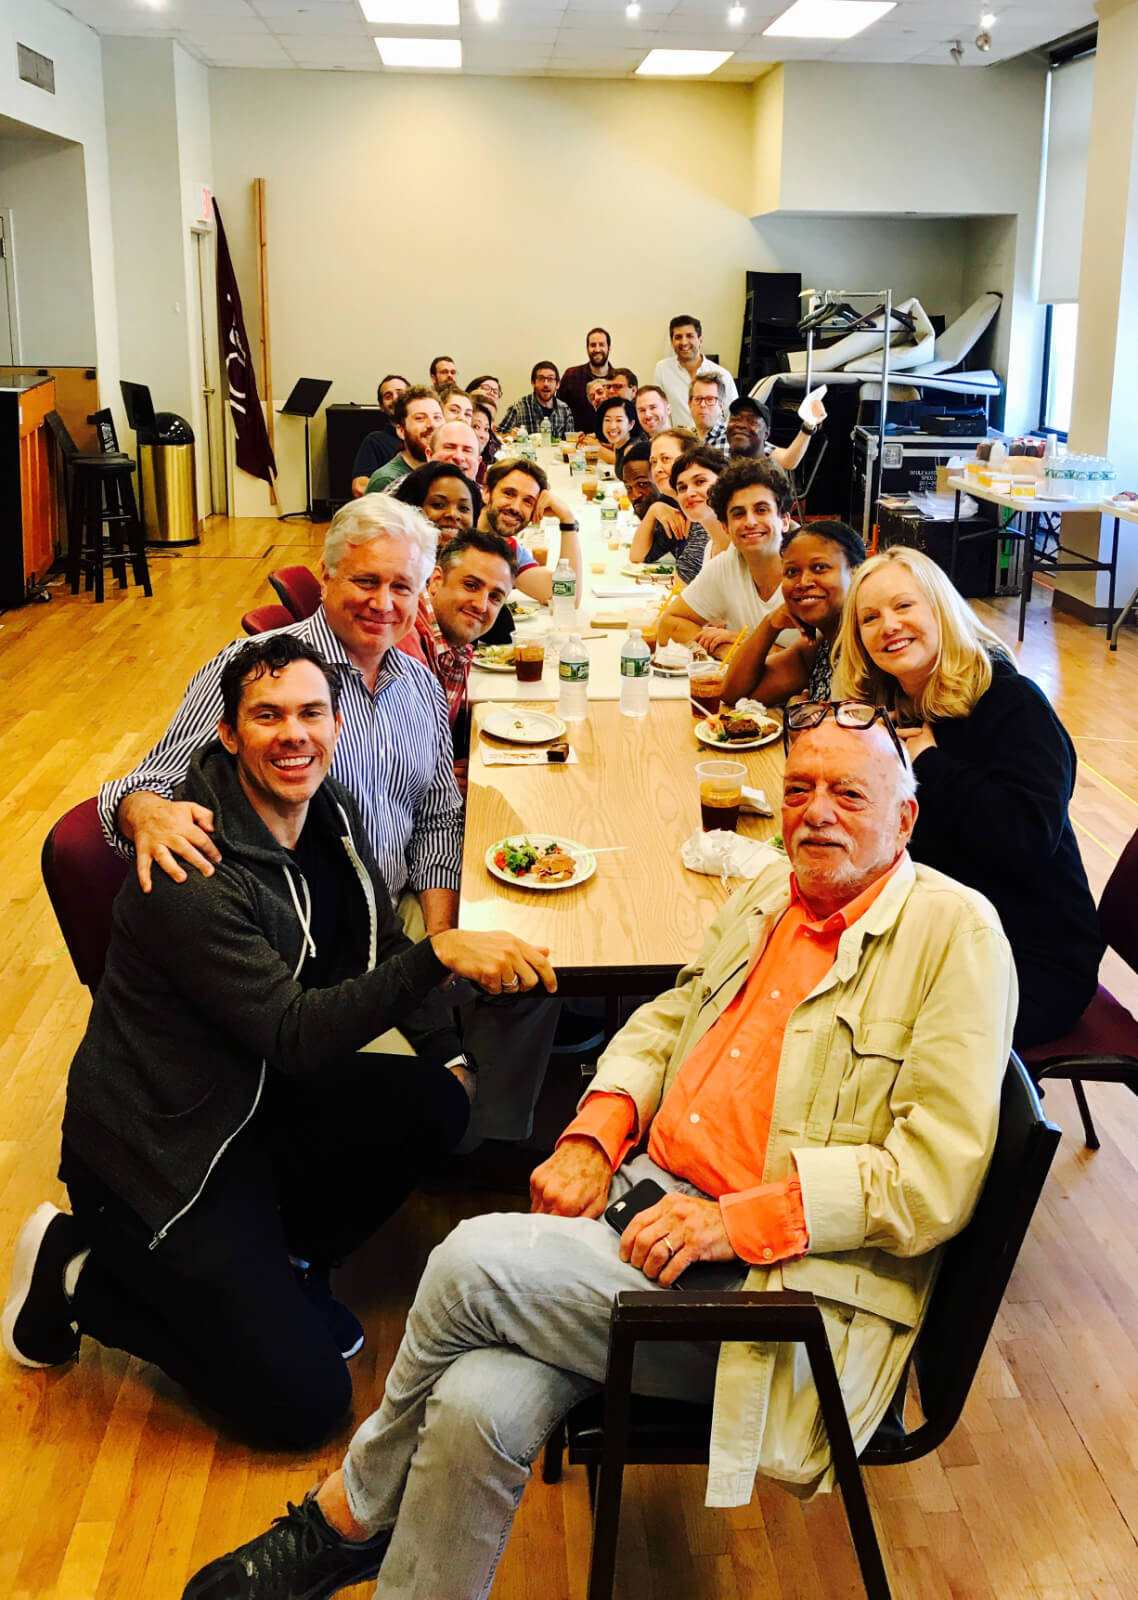 Hal Prince and Susan Stroman having lunch with the Broadway cast and creatives of Prince of Broadway. They are sitting at a long table in a rehearsal studio enjoying their lunch.